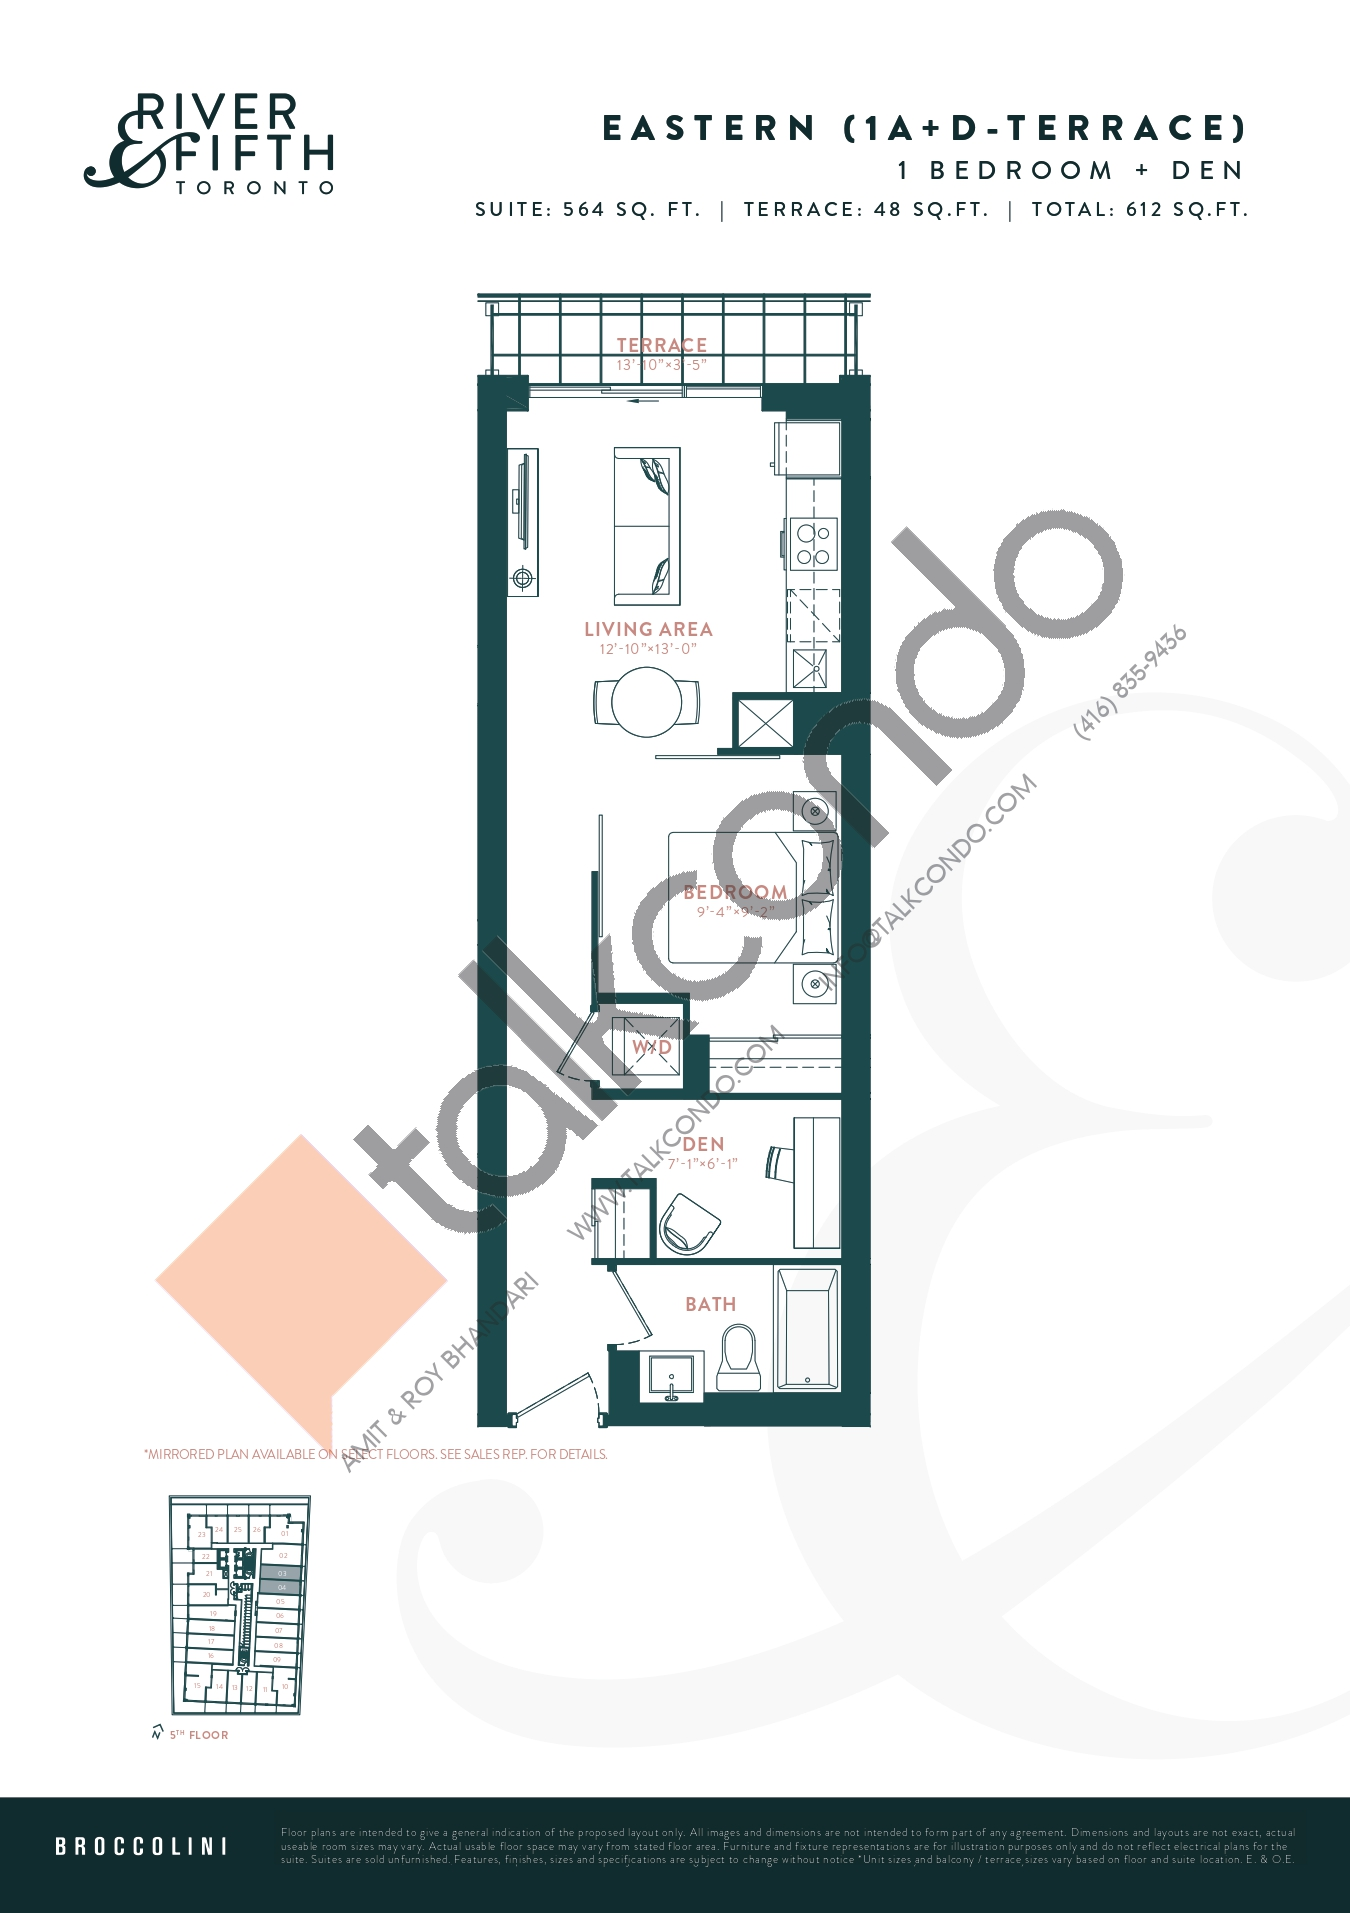 Eastern (1A+D-Terrace) Floor Plan at River & Fifth Condos - 564 sq.ft